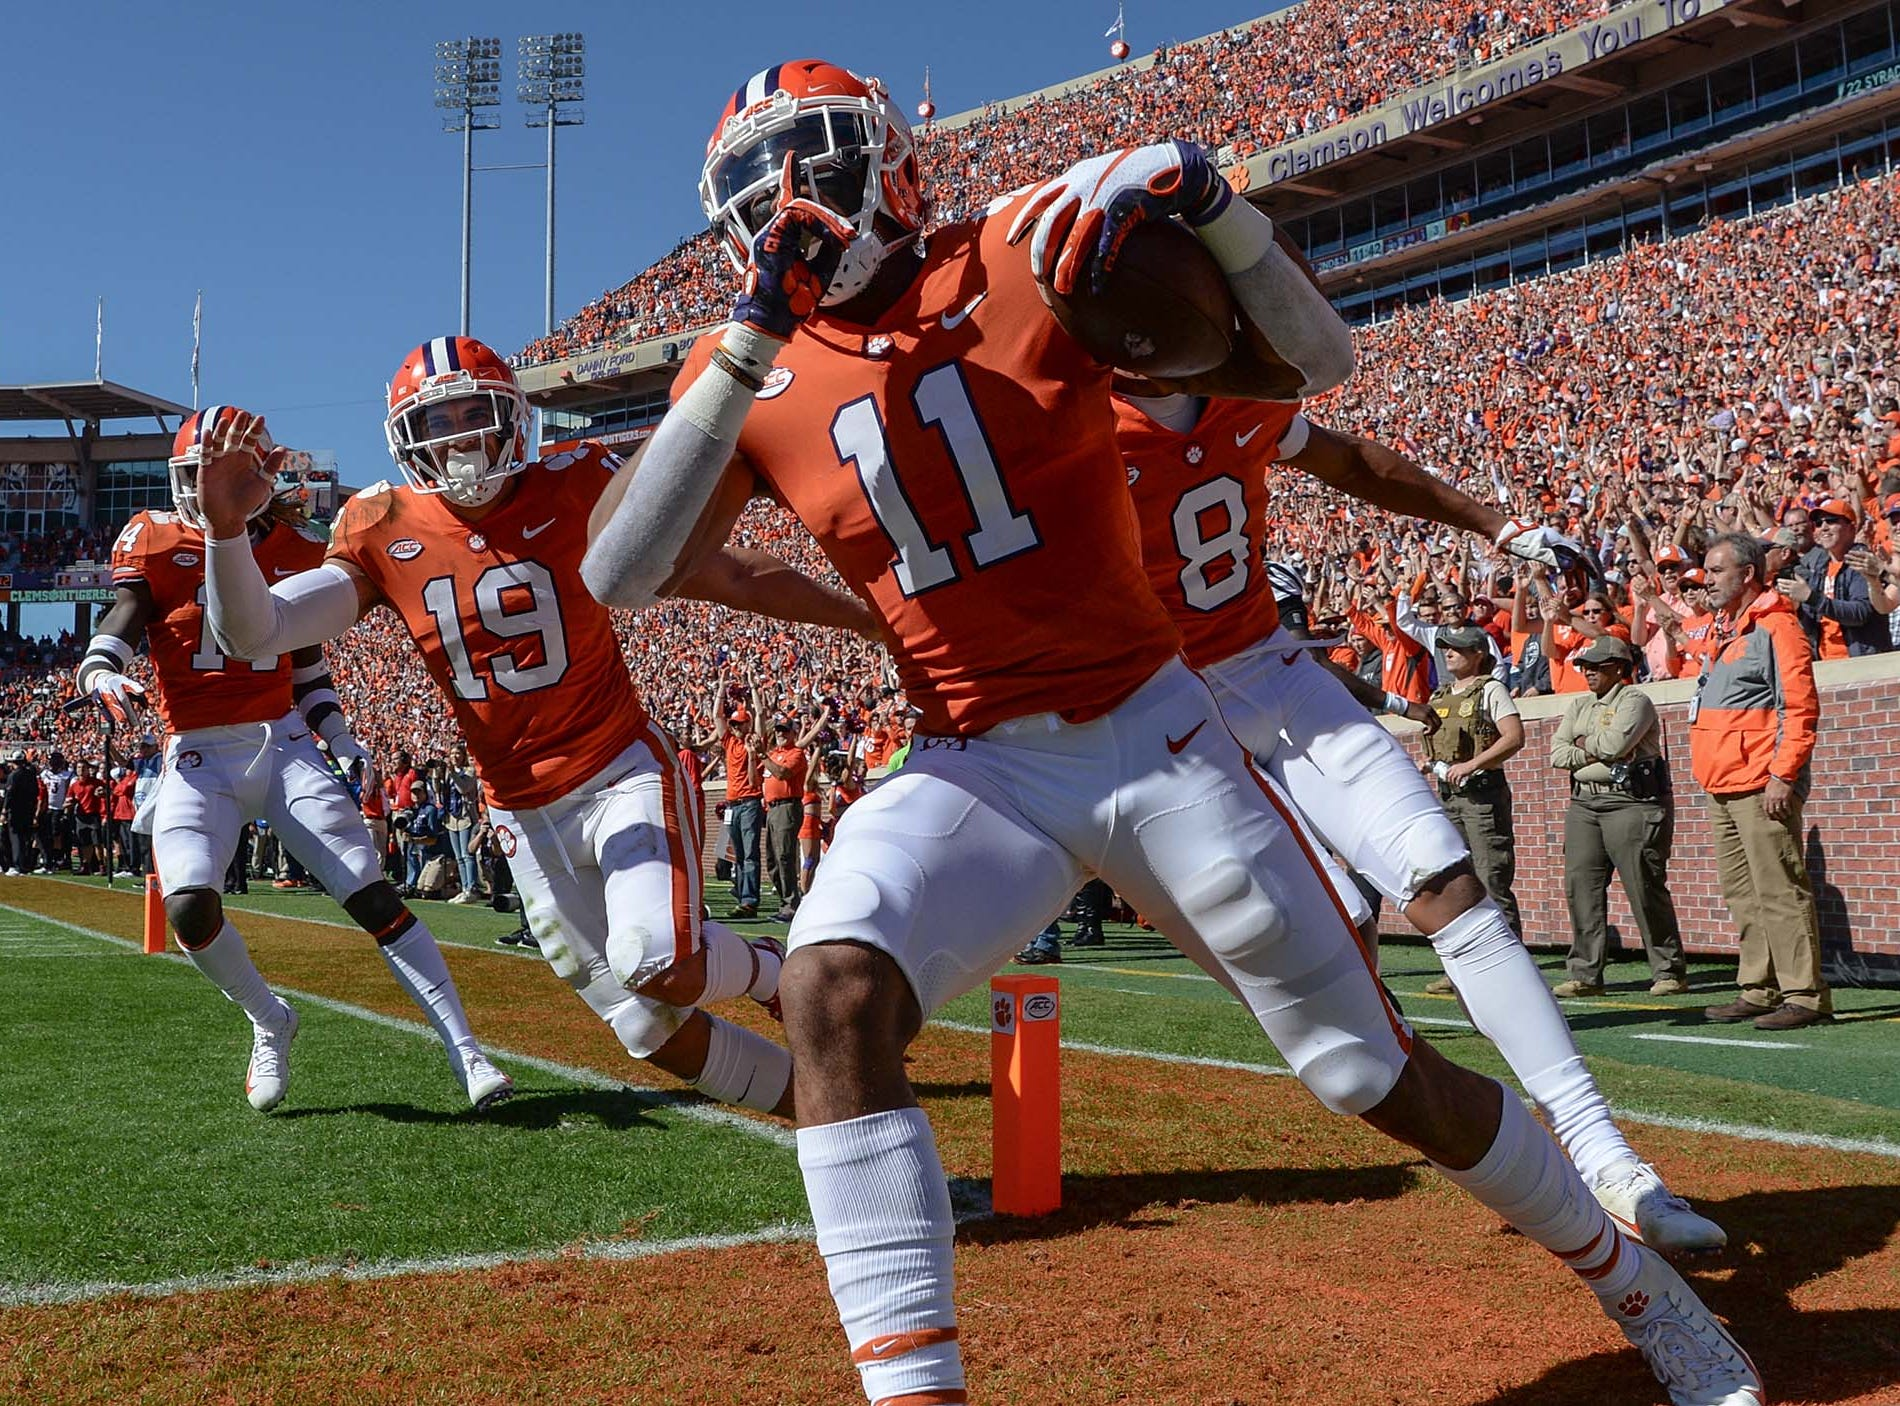 Clemson safety Isaiah Simmons (11) scores a touchdown after interception during the second quarter in Memorial Stadium on Saturday, November 3, 2018.